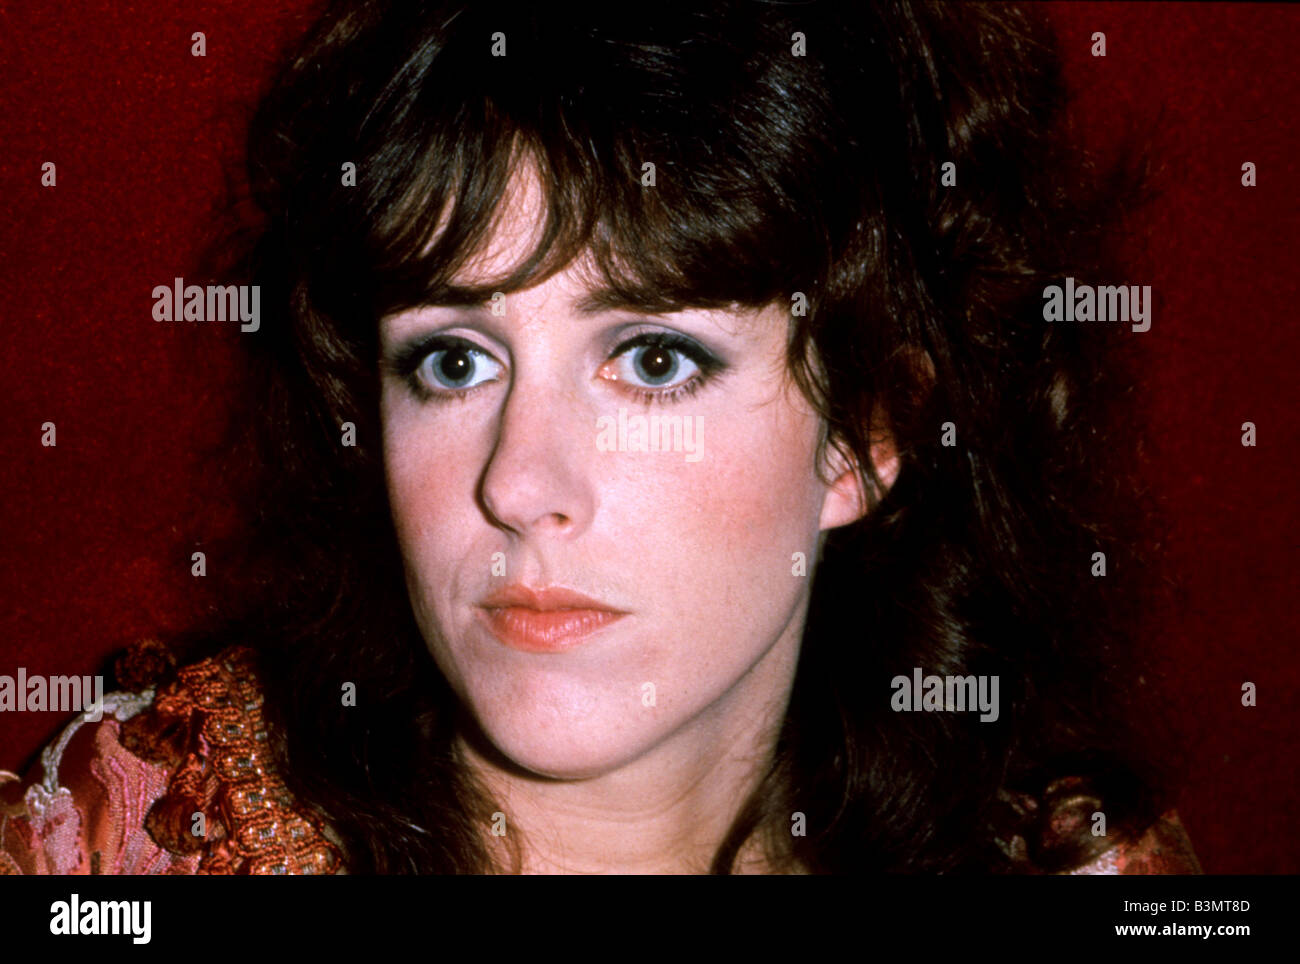 JEFFERSON AIRPLANE  US group with singer Grace Slick in 1970 - Stock Image